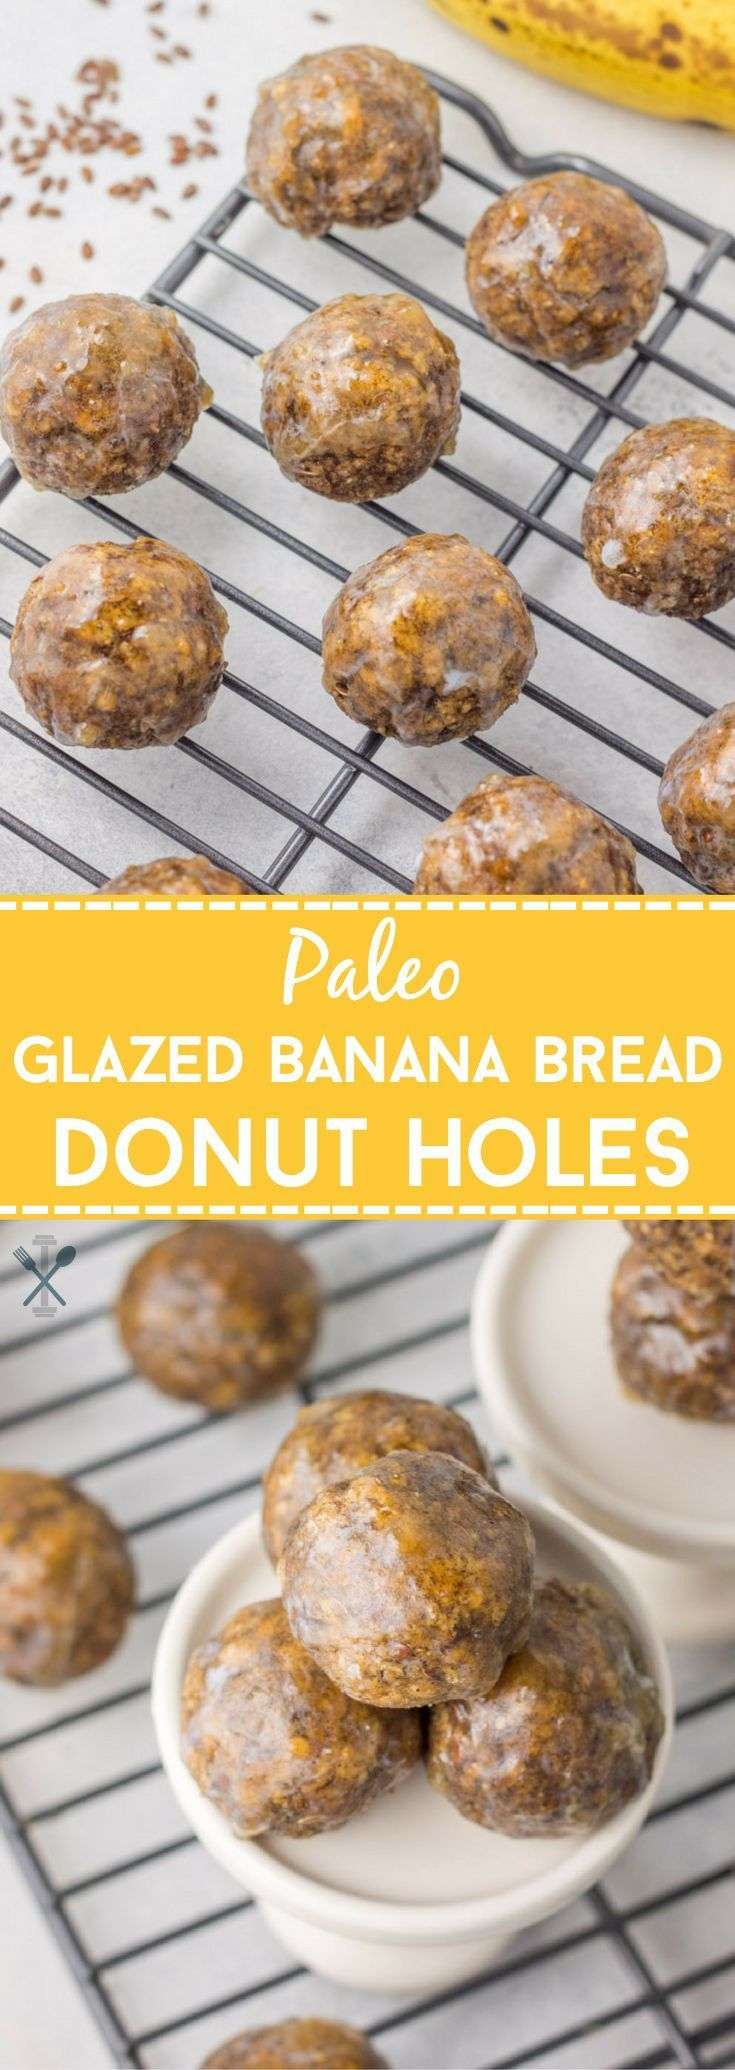 These baked, paleo donut holes tasted just like banana bread, with a perfectly glazed honey vanilla outer shell. Delicious, healthy, and so simple to make!